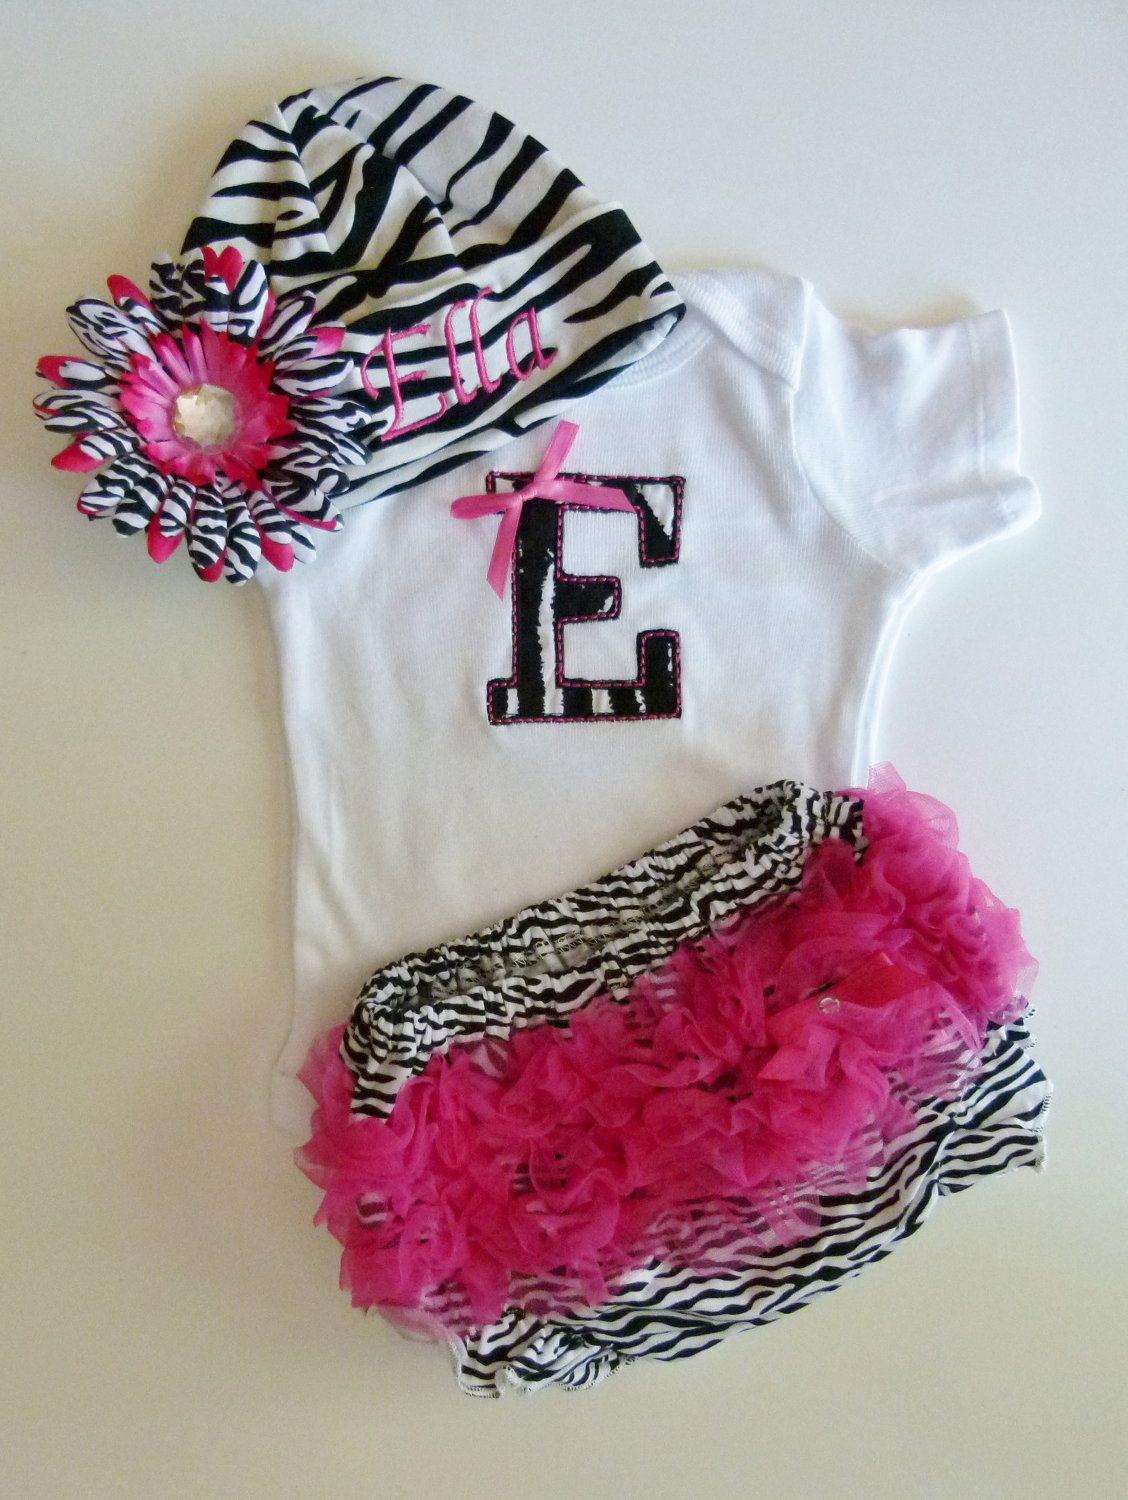 Ruffle Butt Bloomers Personalized Monogram Baby Girl Onesie and Zebra Beanie With Flower Hairbow. $40.00, via Etsy.